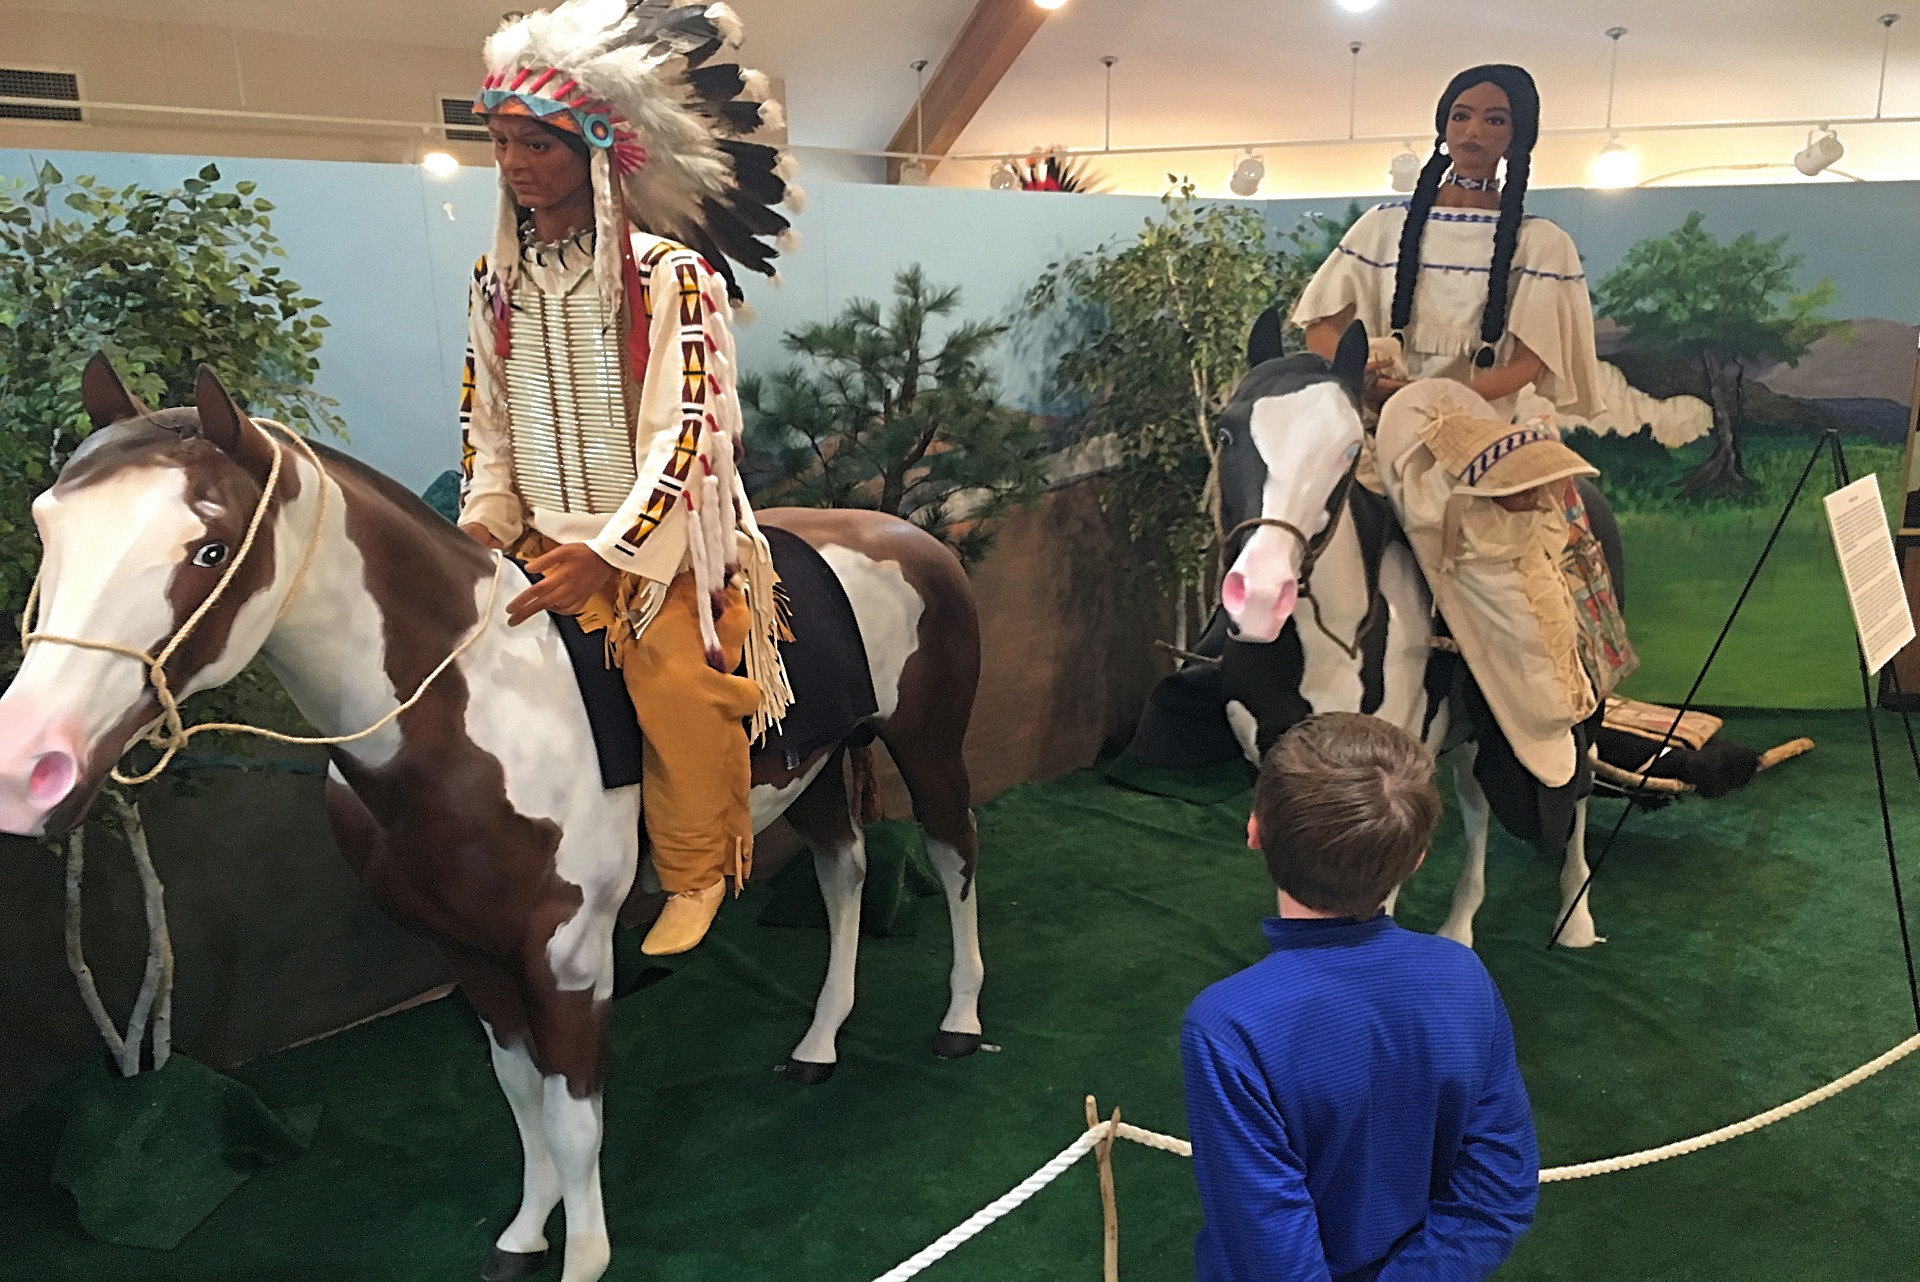 Exhibits at the Shoshone Bannock Tribal Museum in Pocatello